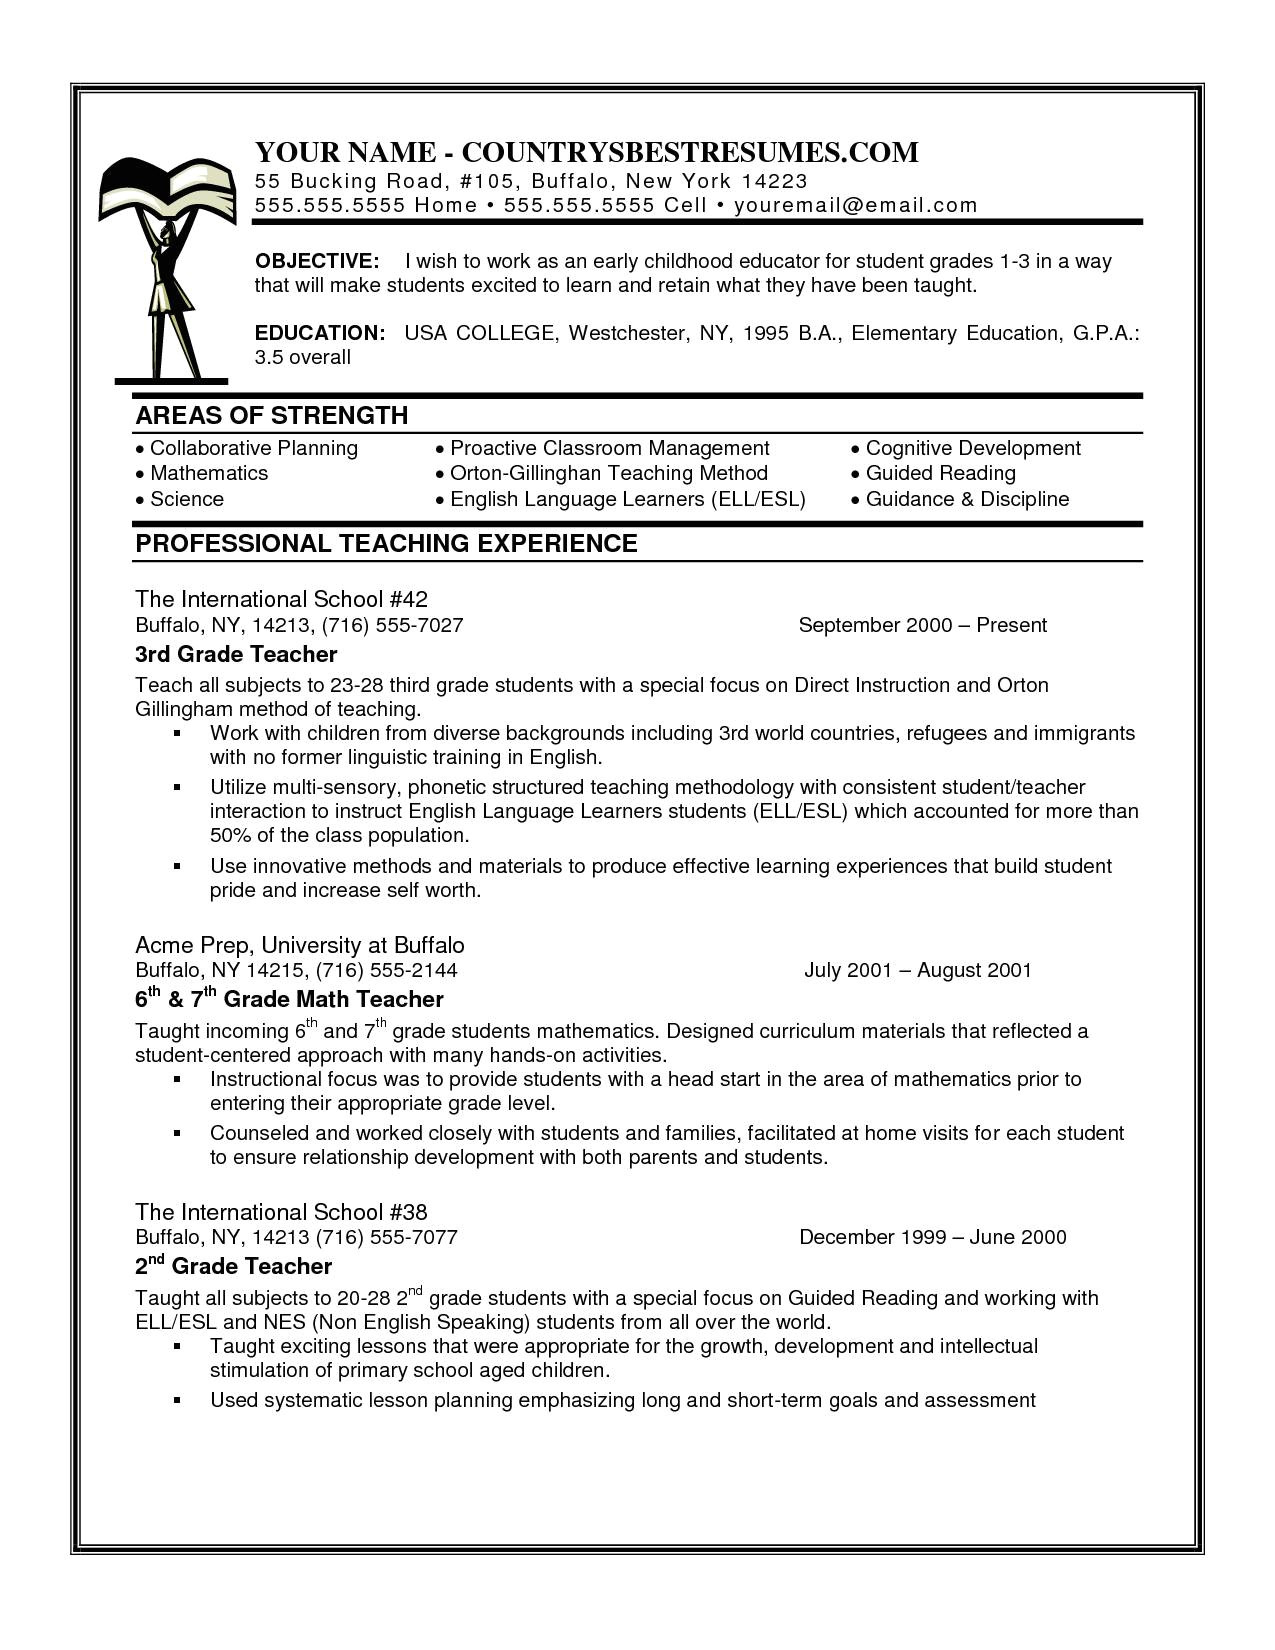 professional organizer resume sample luxury resume examples for teaching converza